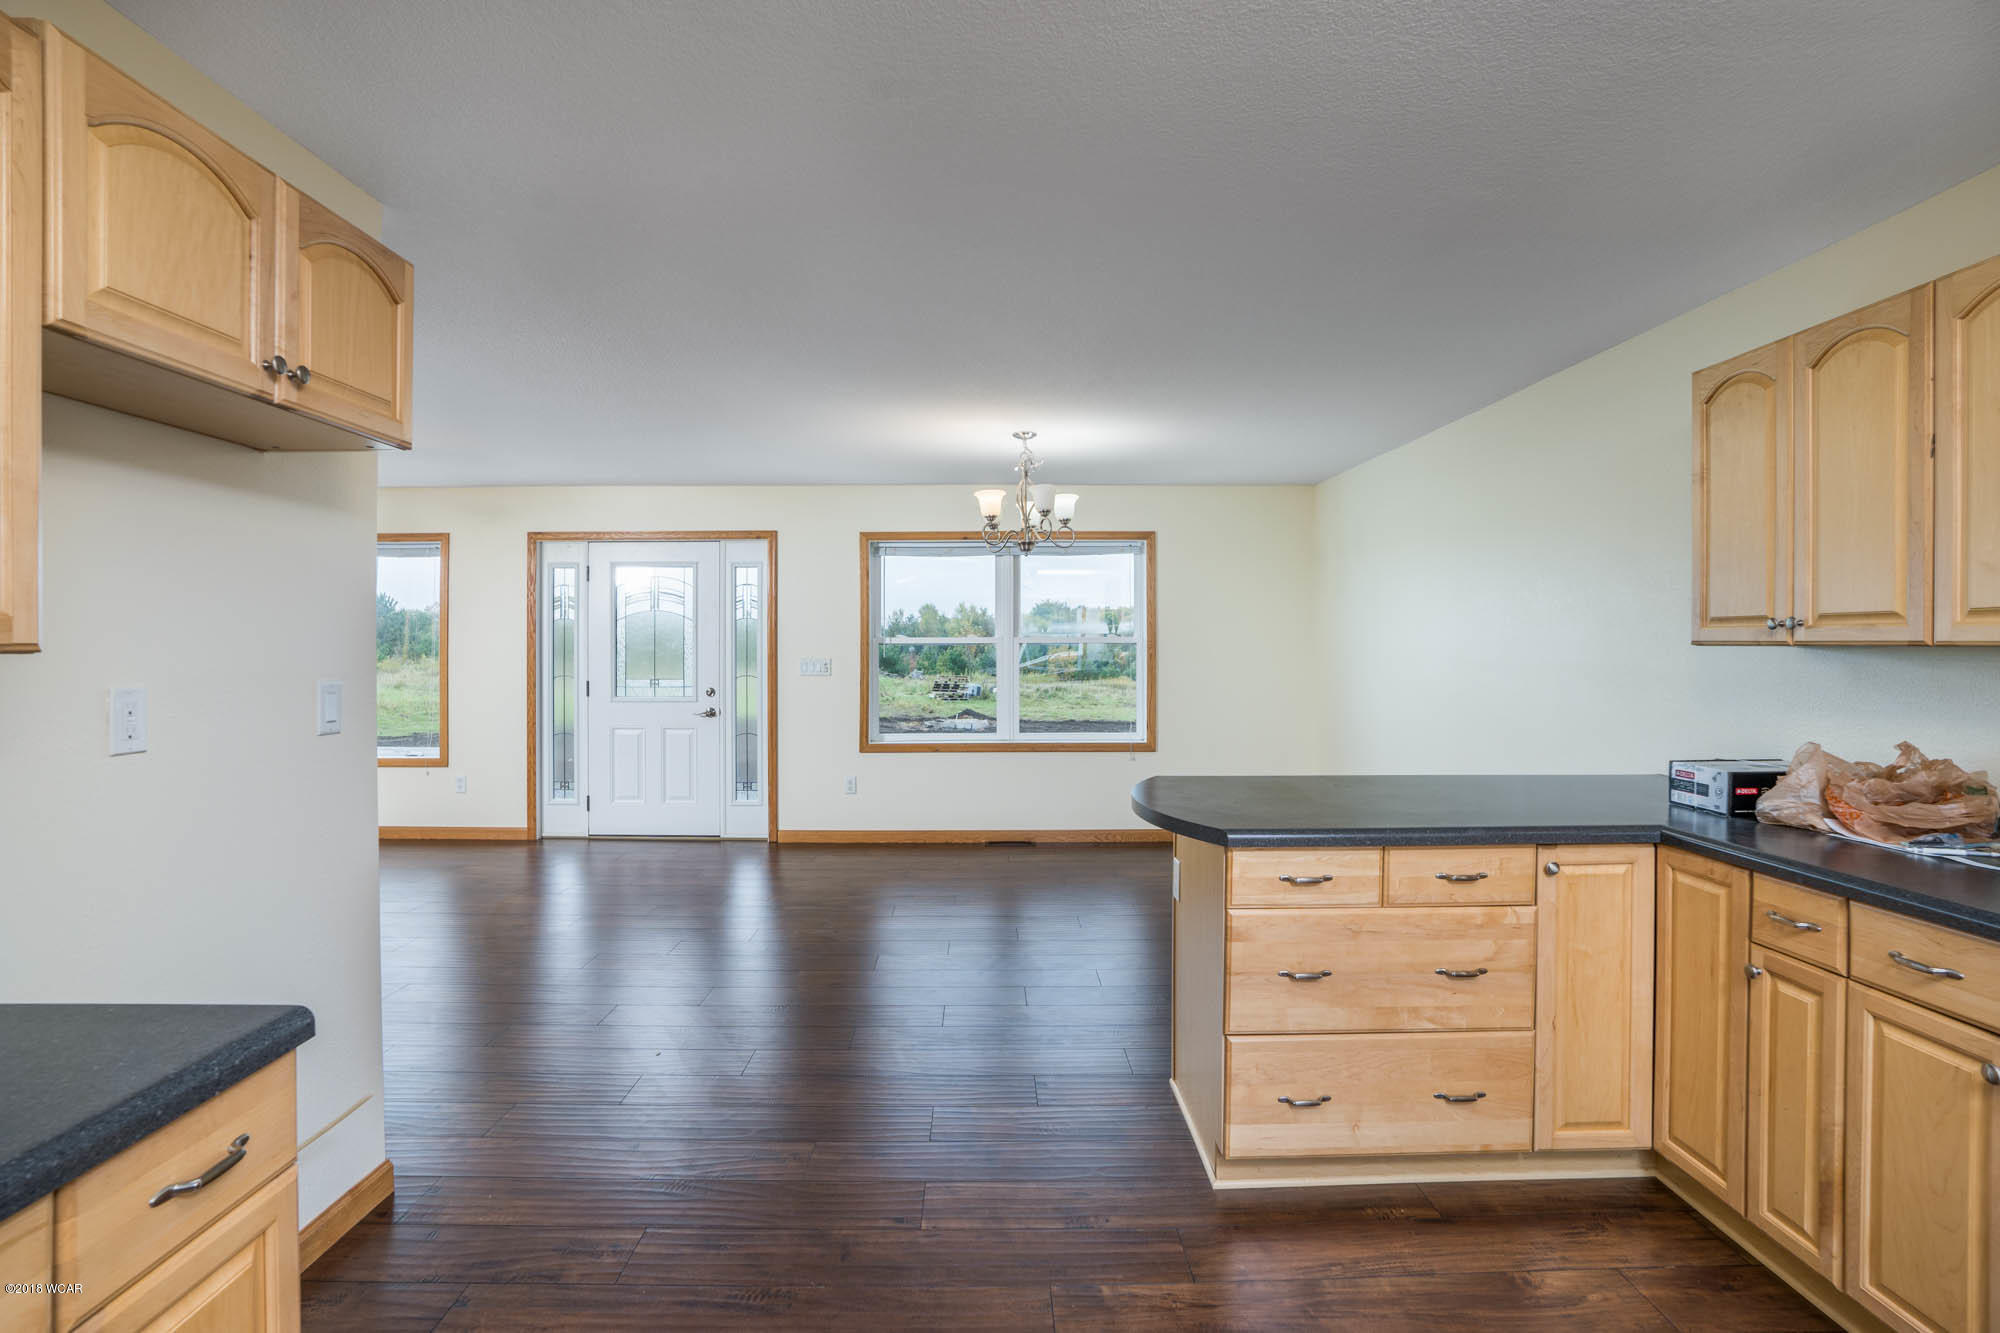 12948 212th Ave,New London,4 Bedrooms Bedrooms,3 BathroomsBathrooms,Single Family,212th Ave,6032547